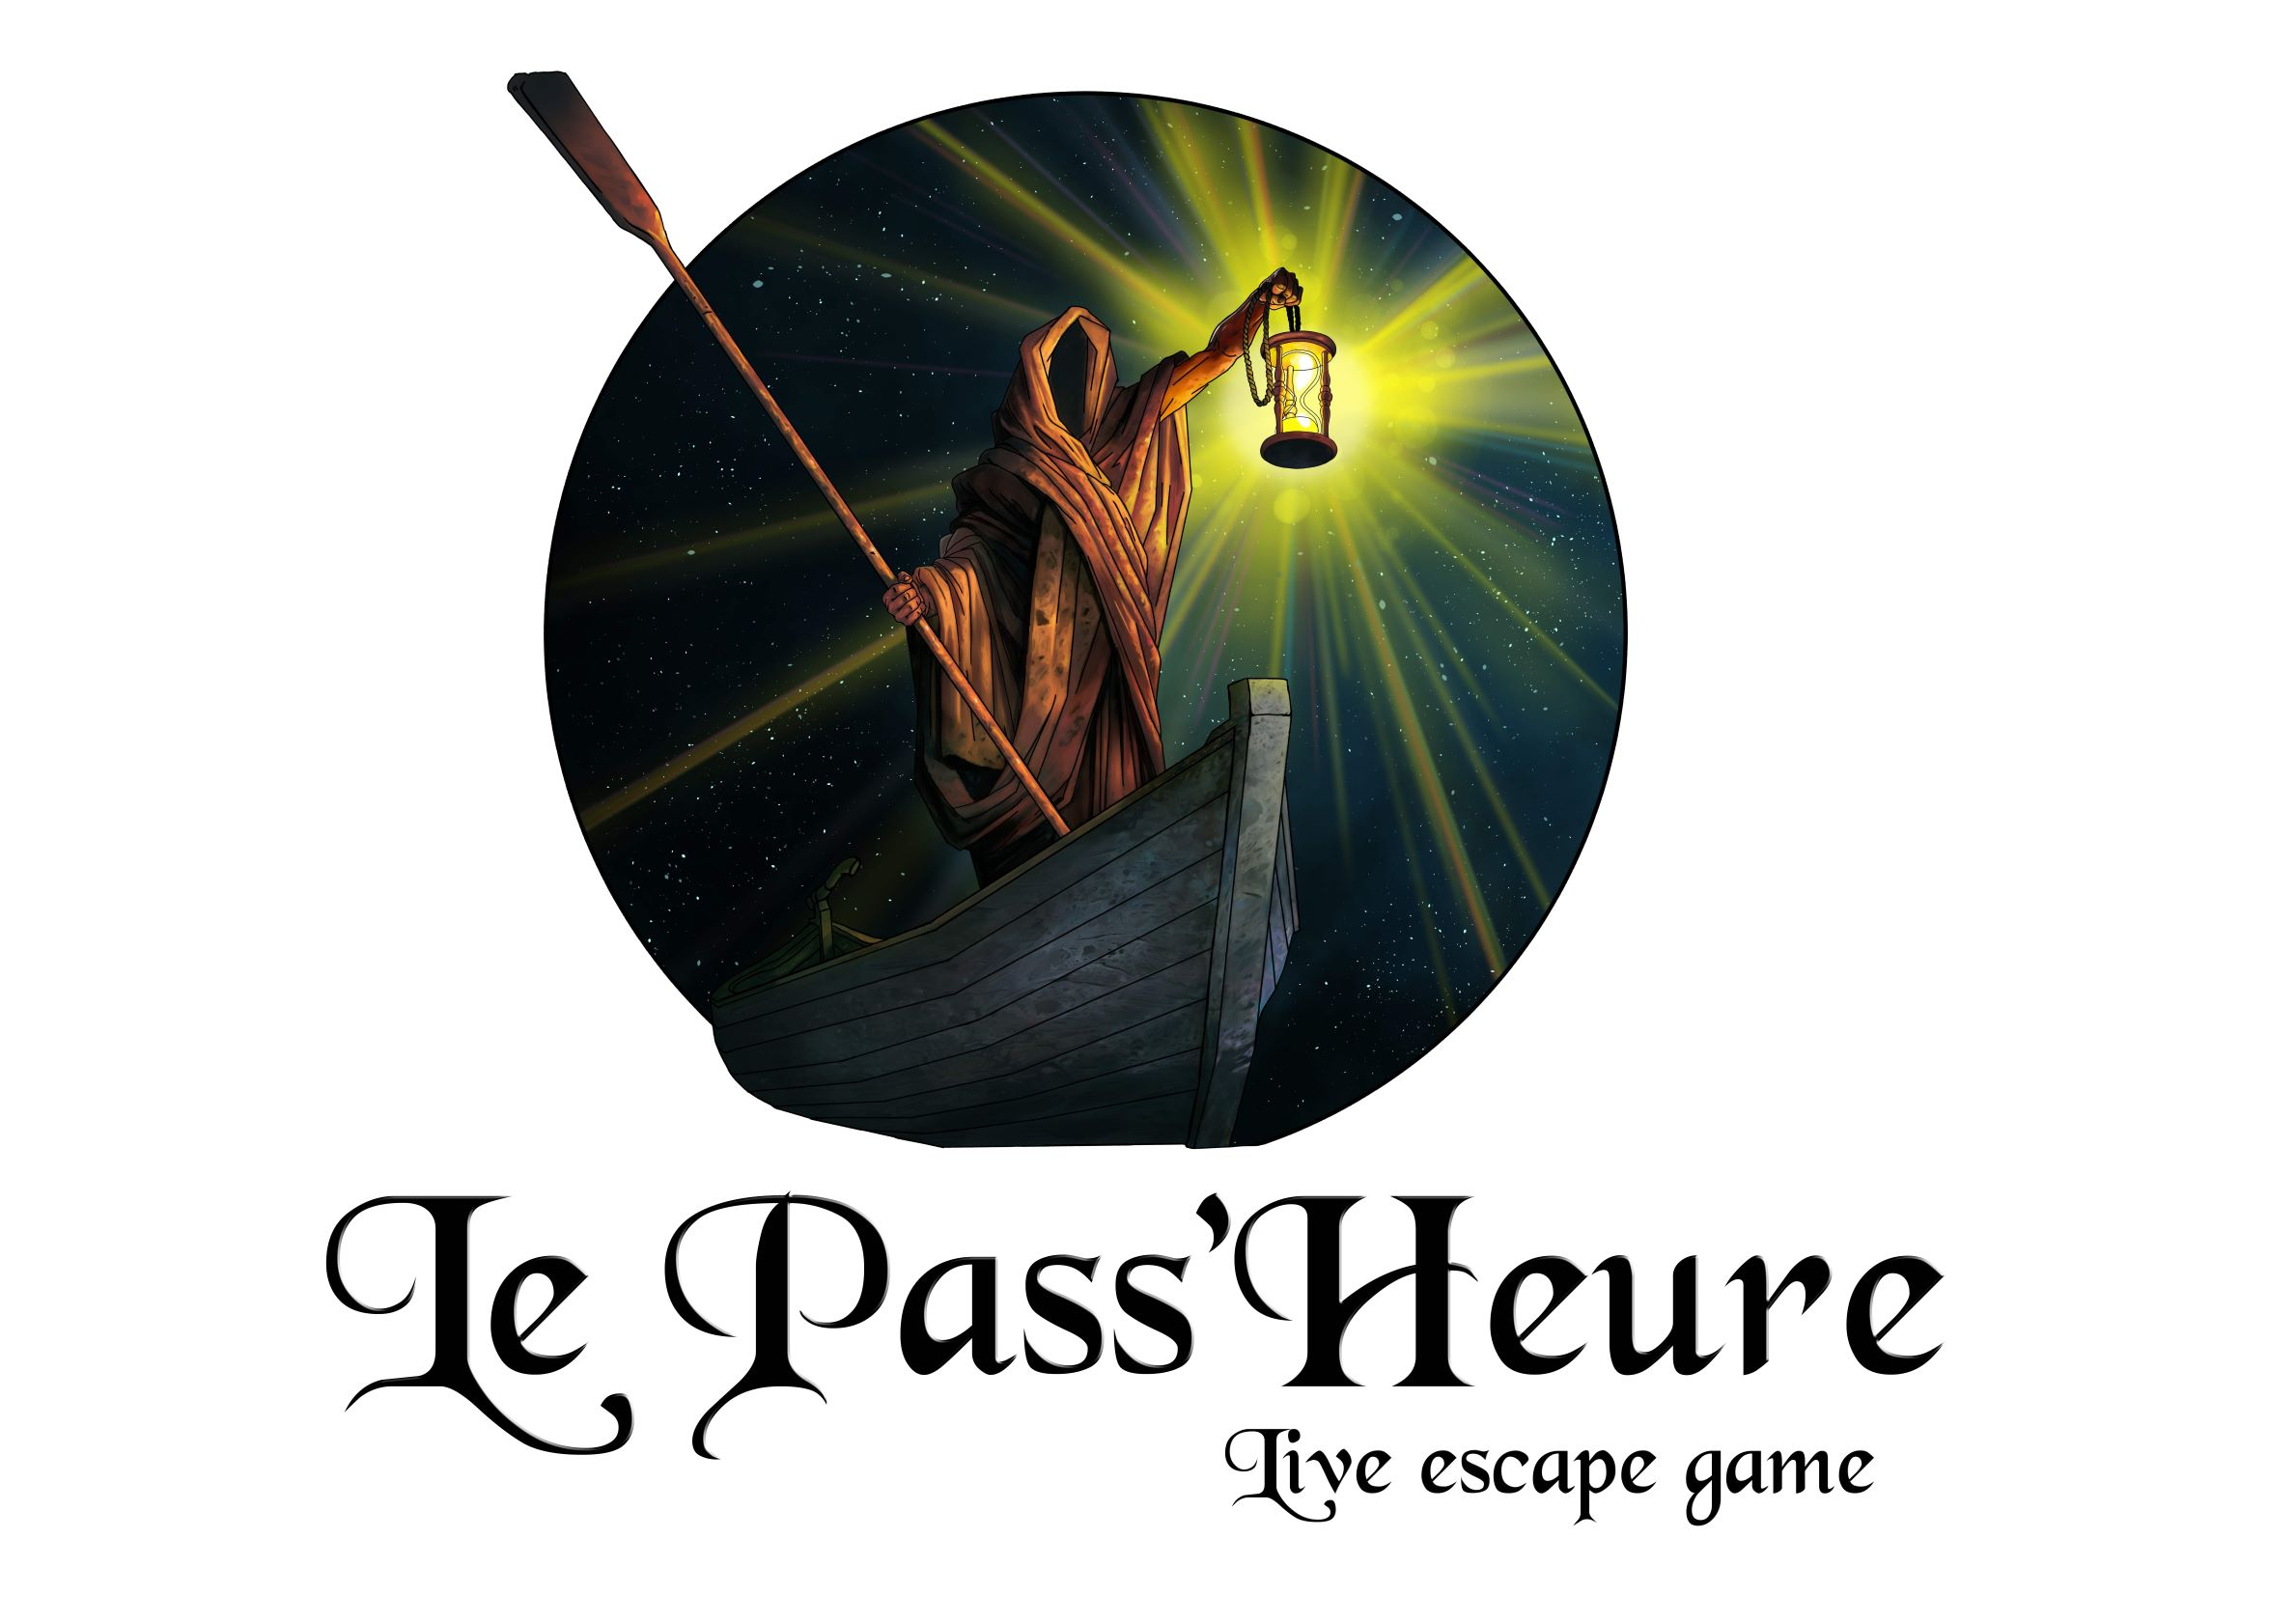 Le Pass'Heure